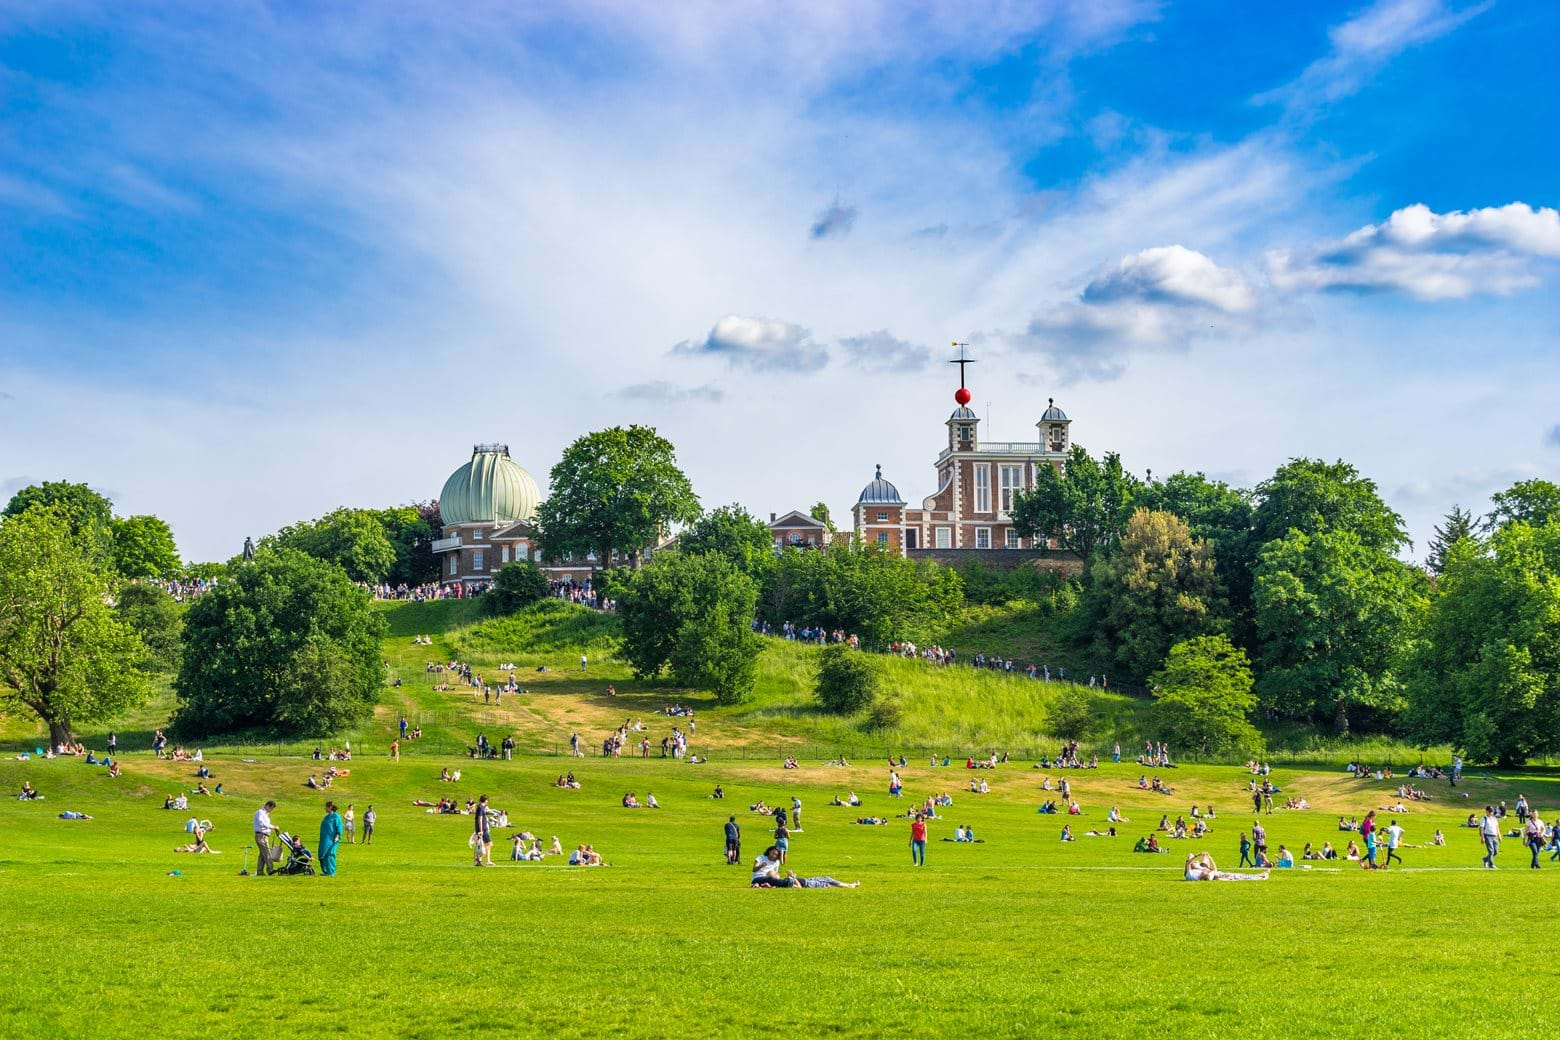 The Greenwich Park